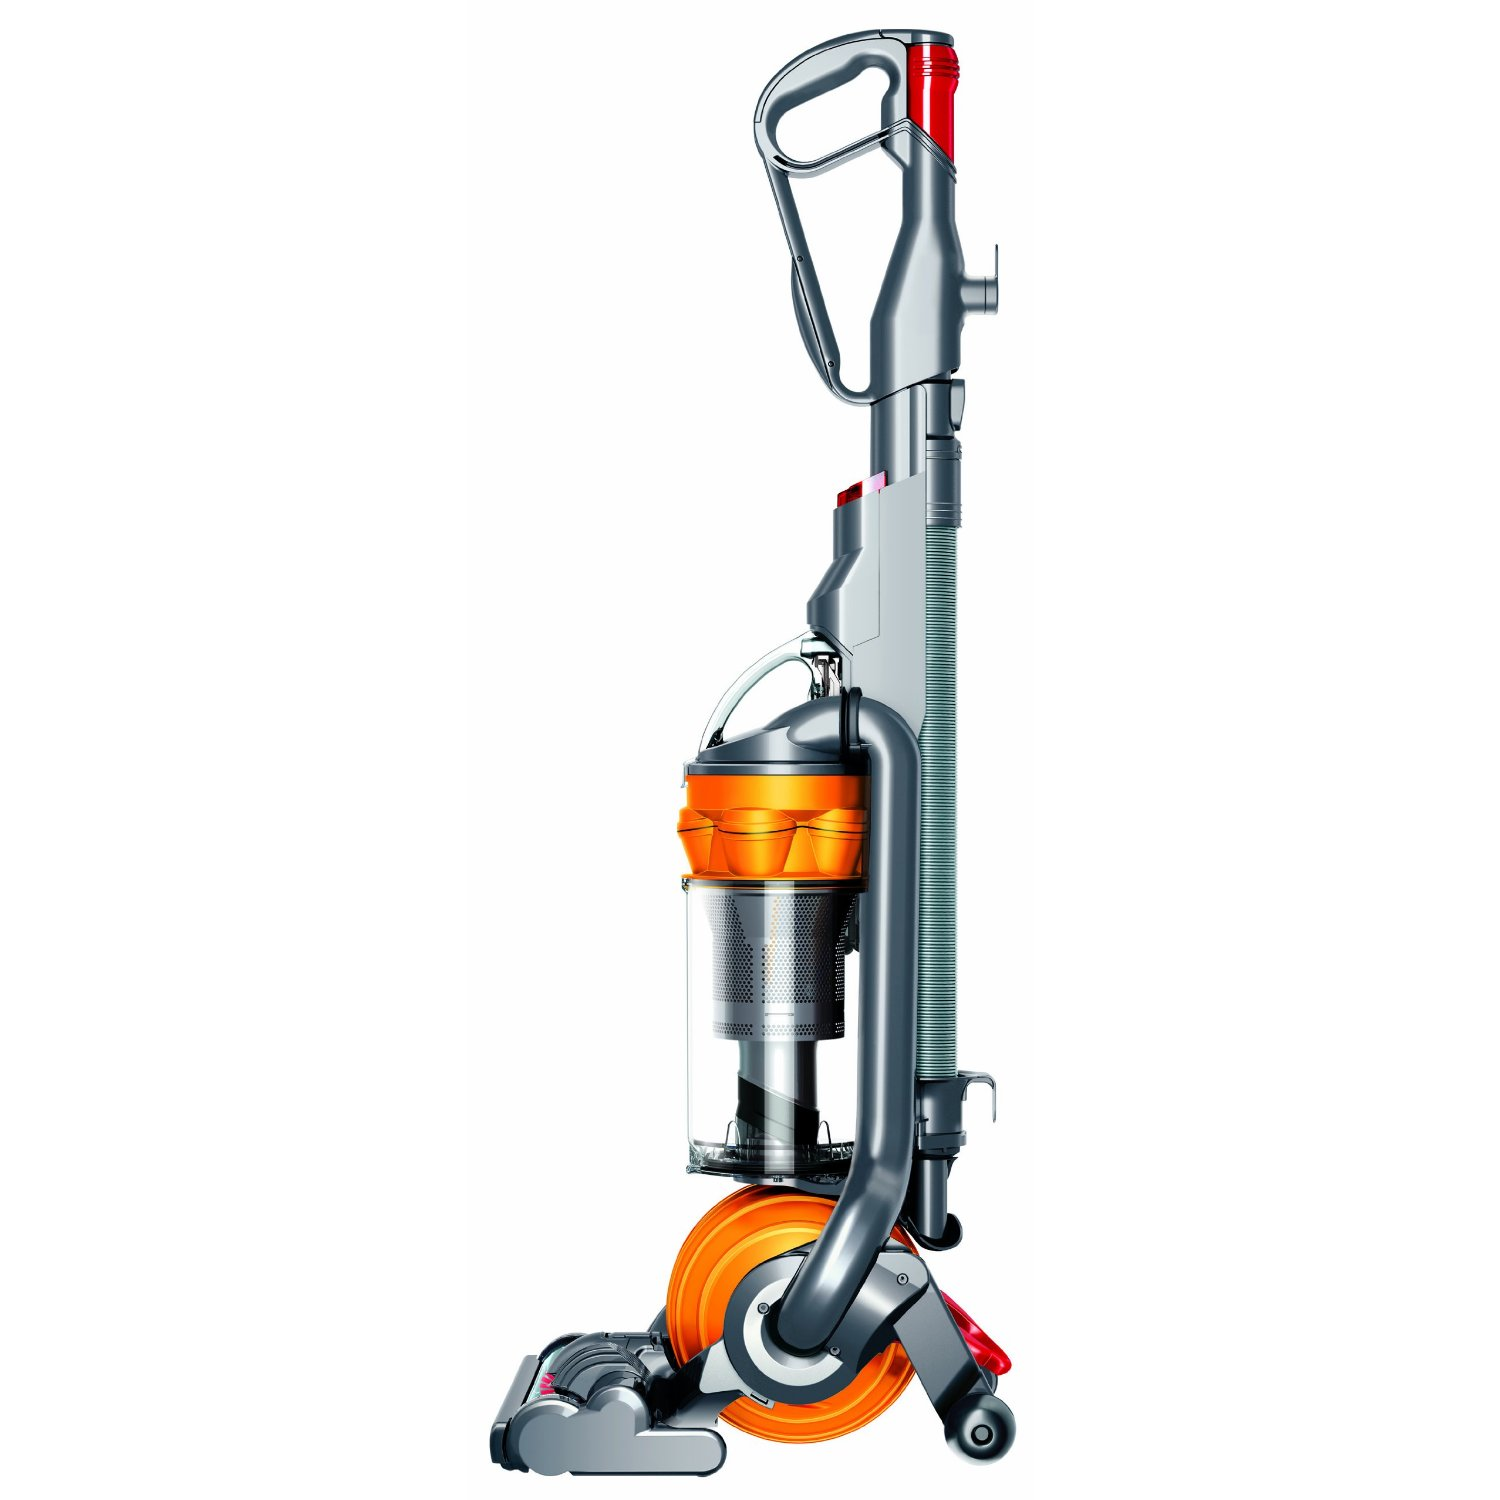 Dyson Ball Dyson Dc25 Ball All Floors Upright Vacuum Cleaner 319 99